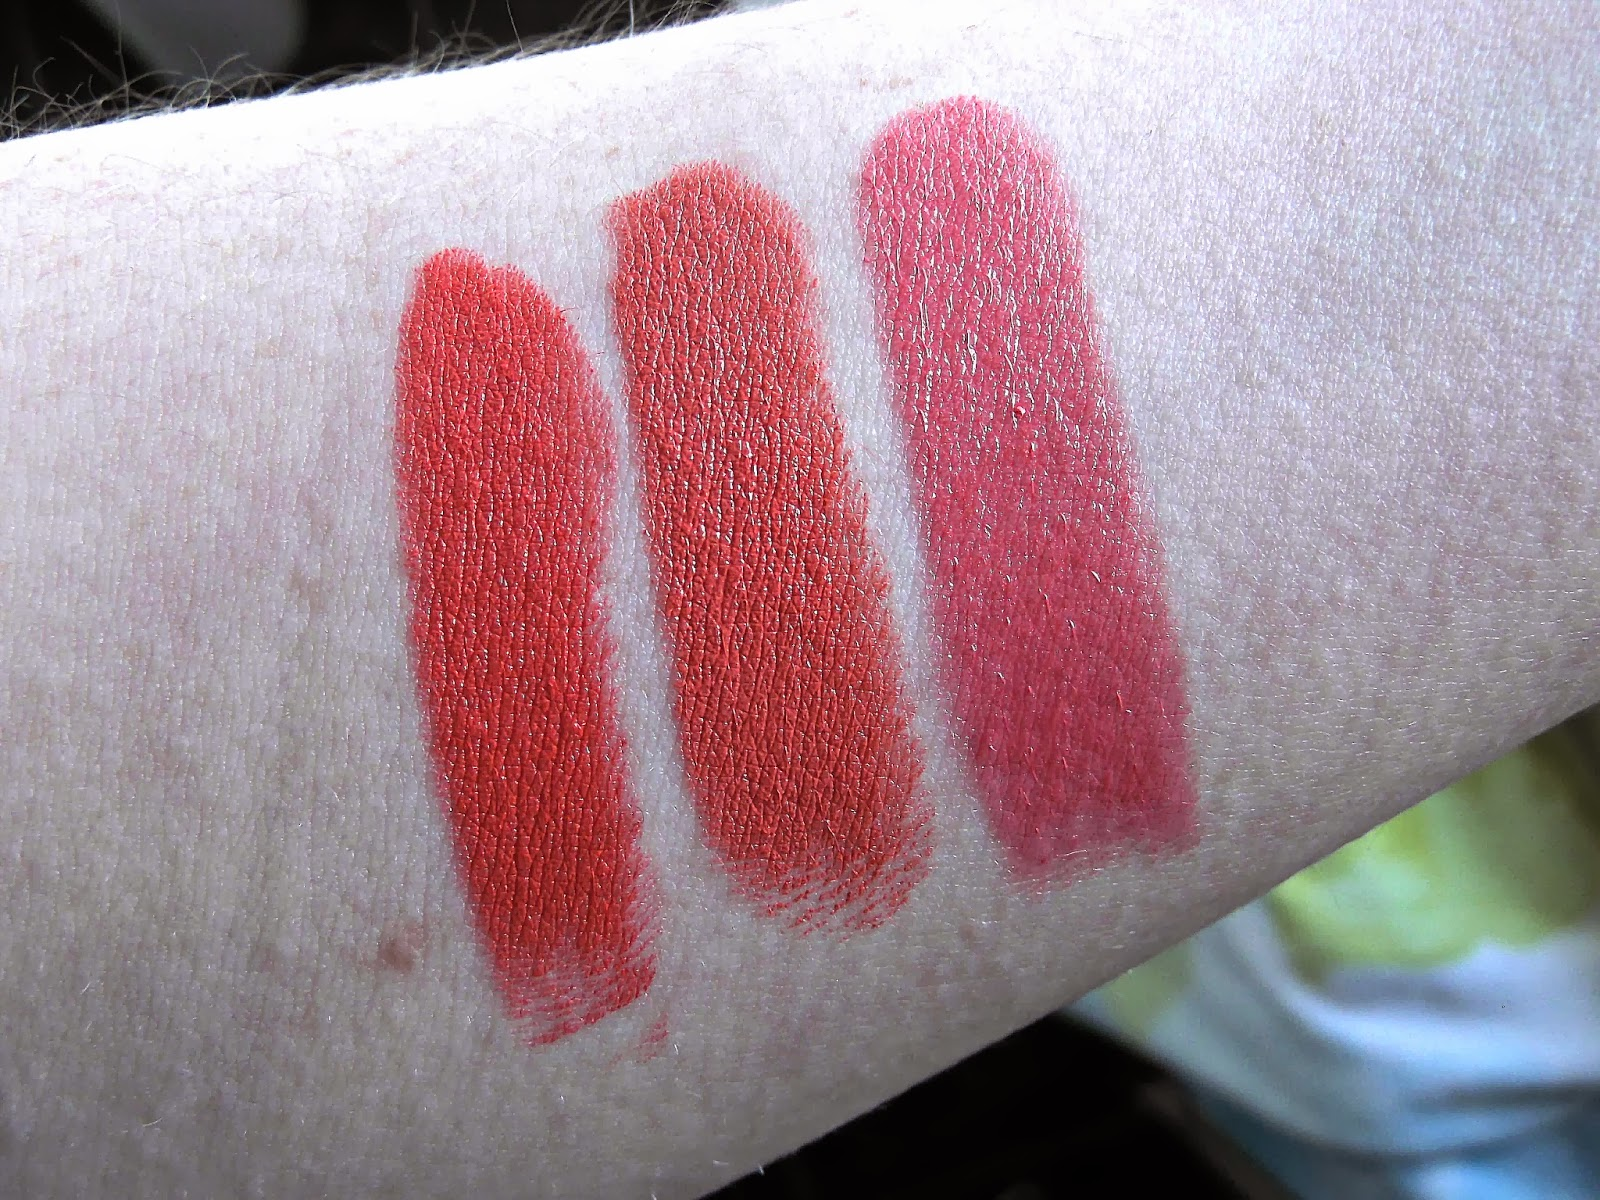 An Image of Swatches of MAC Amplified Lipstick in Vegas Volt, Barry M Lip Paint in 151 Sunset and Benefit Lipstick in My Treat